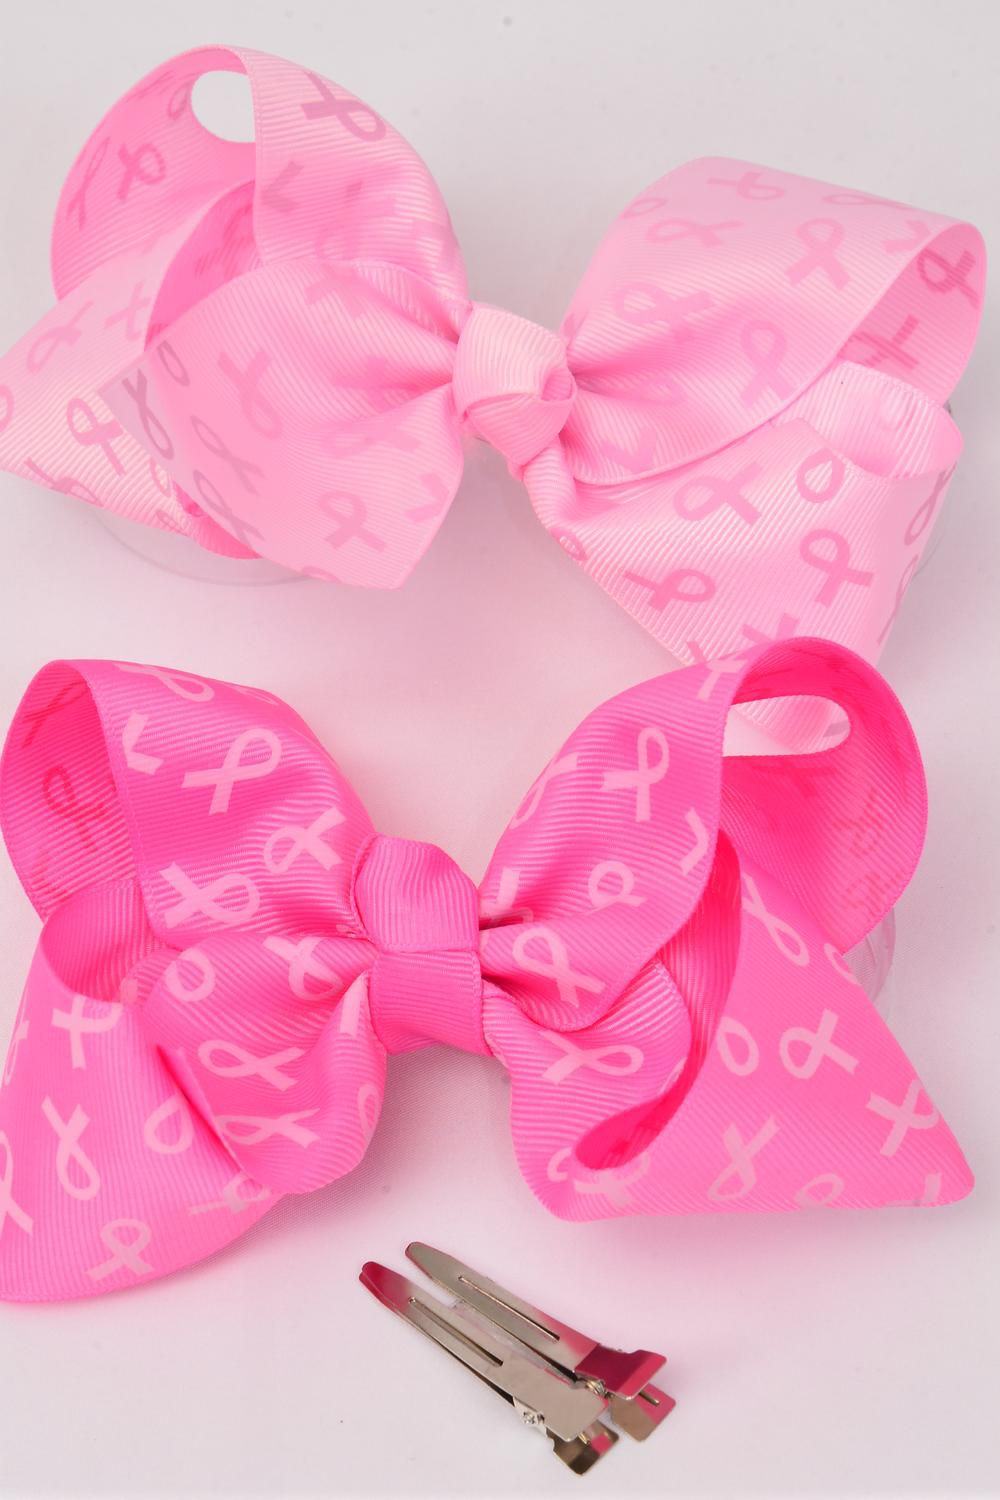 "Hair Bow Jumbo Pink Ribbon Grosgrain Fabric Bow-tie/DZ Alligator Clip,Size-6""x 5"" Wide,6 of each Color Asst ,Clip Strip & UPC Code"